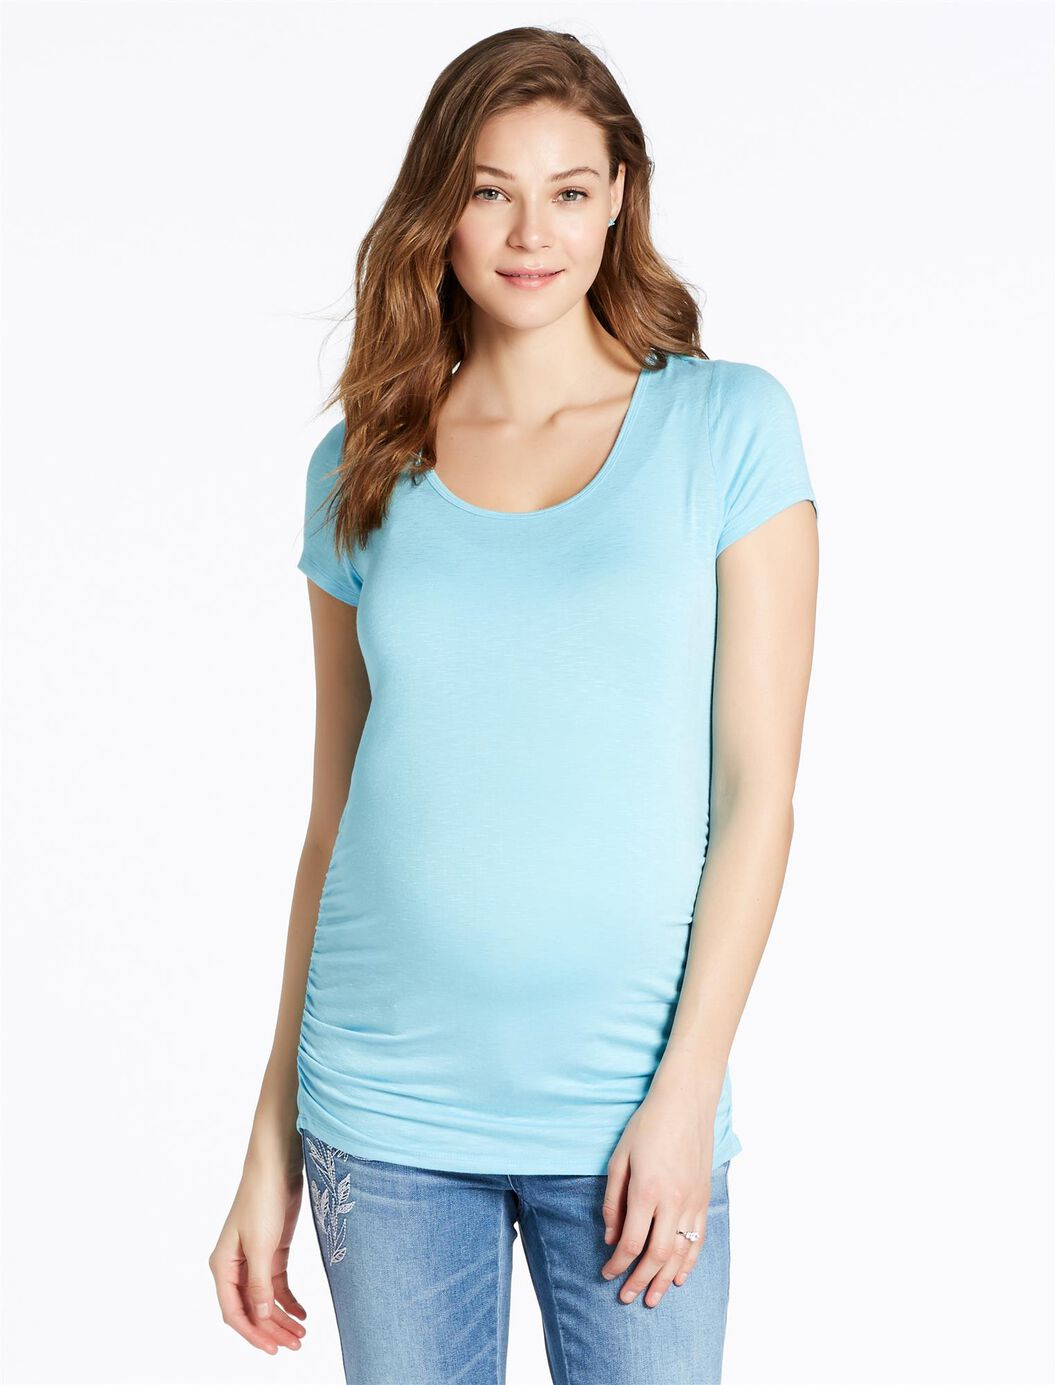 Jessica Simpson Cross Back Maternity Tee- Light Blue at Motherhood Maternity in Victor, NY | Tuggl